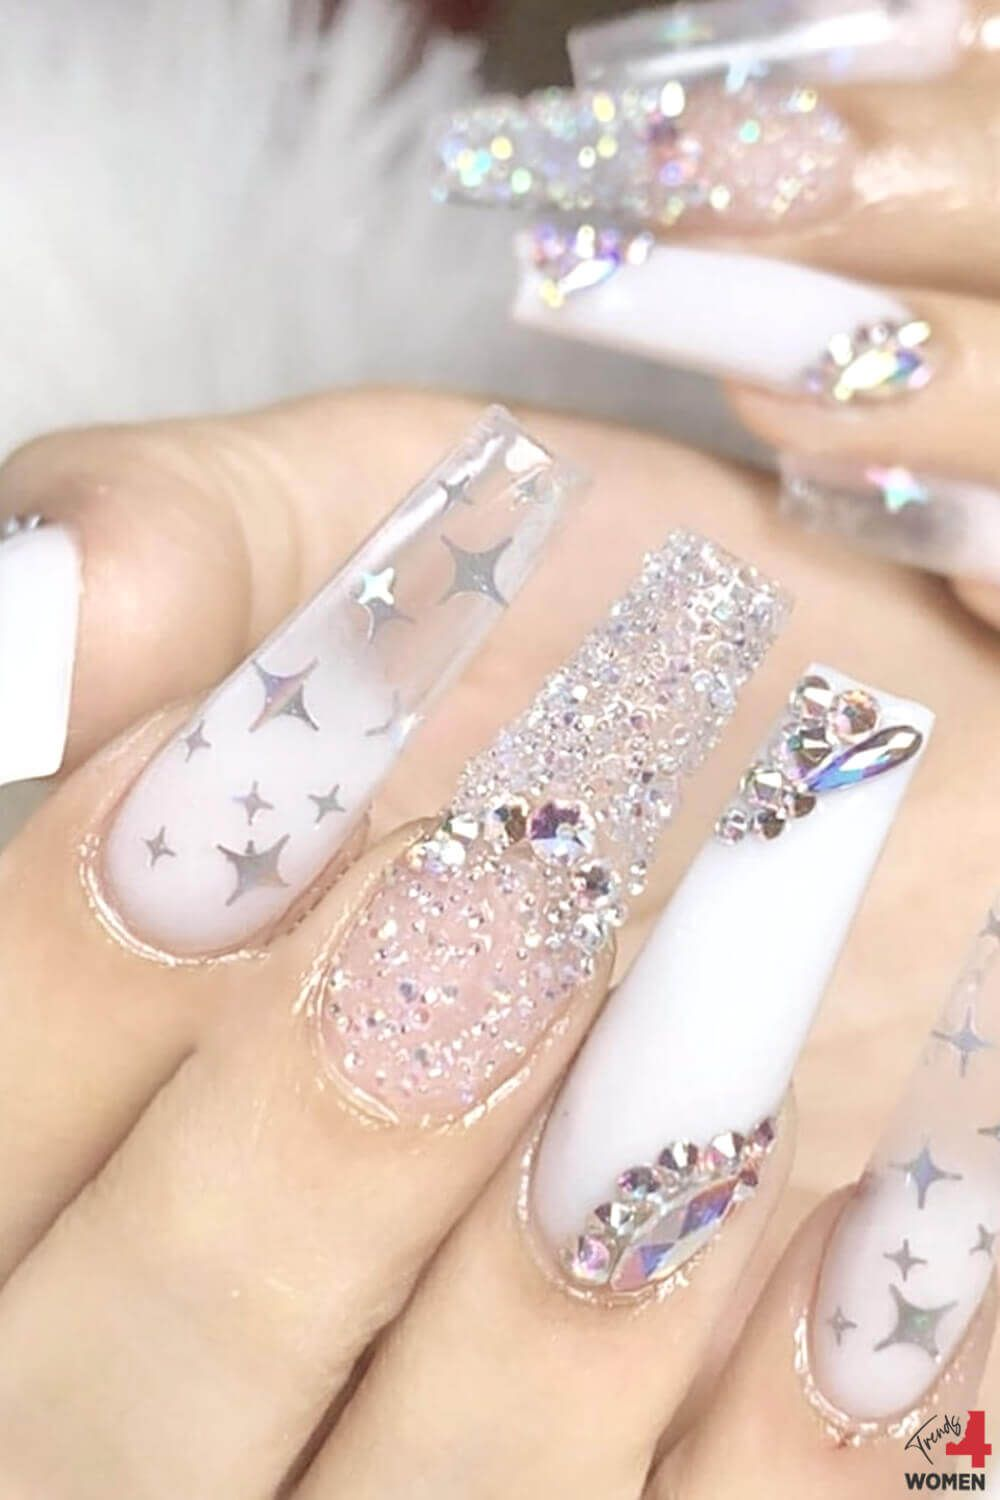 Superb Long Luxury Nail Design Tutorial In 2020 Luxury Nails Best Acrylic Nails Nail Designs